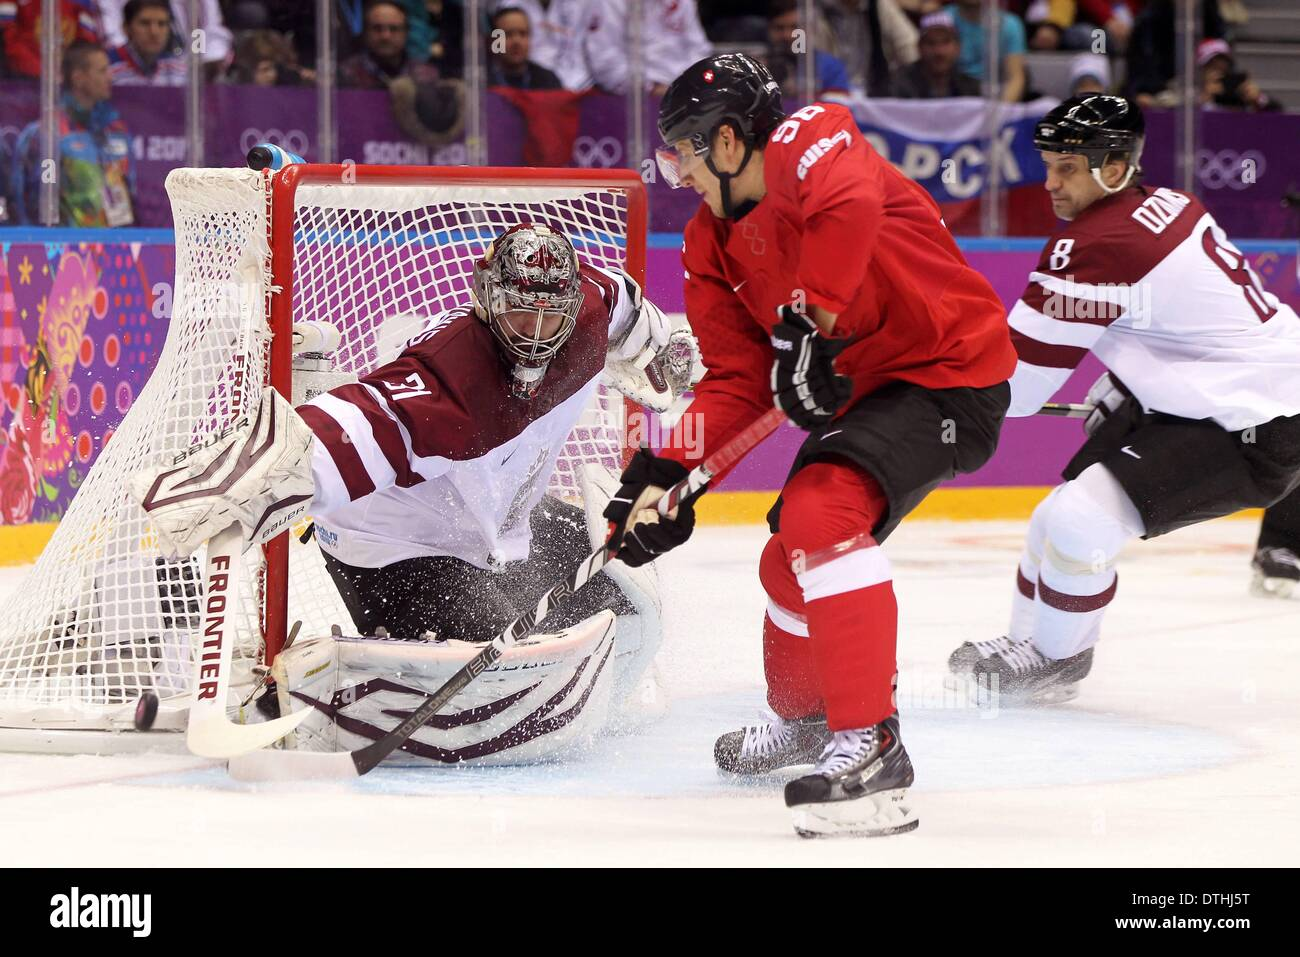 Sochi, Russia. 18th Feb, 2014. Mens ice skating playoffs. Switzerland versus Latvia. Torhueter Edgars Masalskis (L) and Sandis Ozolins (LAT) challenges Damien Brunner (SUI) Credit:  Action Plus Sports/Alamy Live News - Stock Image